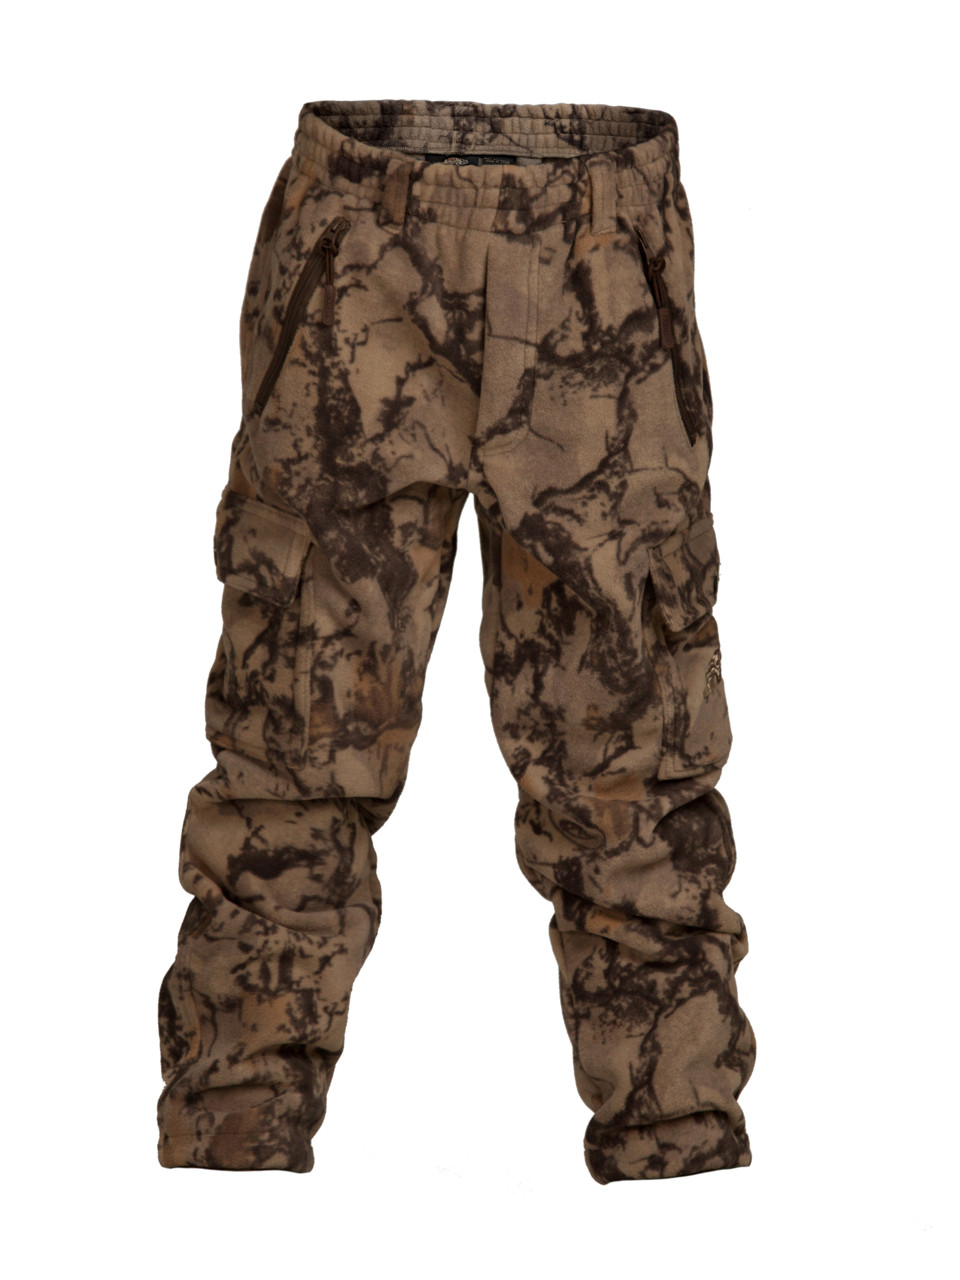 ba7a21d1ad9ff Natural Youth Classic Fleece Hunting Pant - Kids Camo - Natural Gear